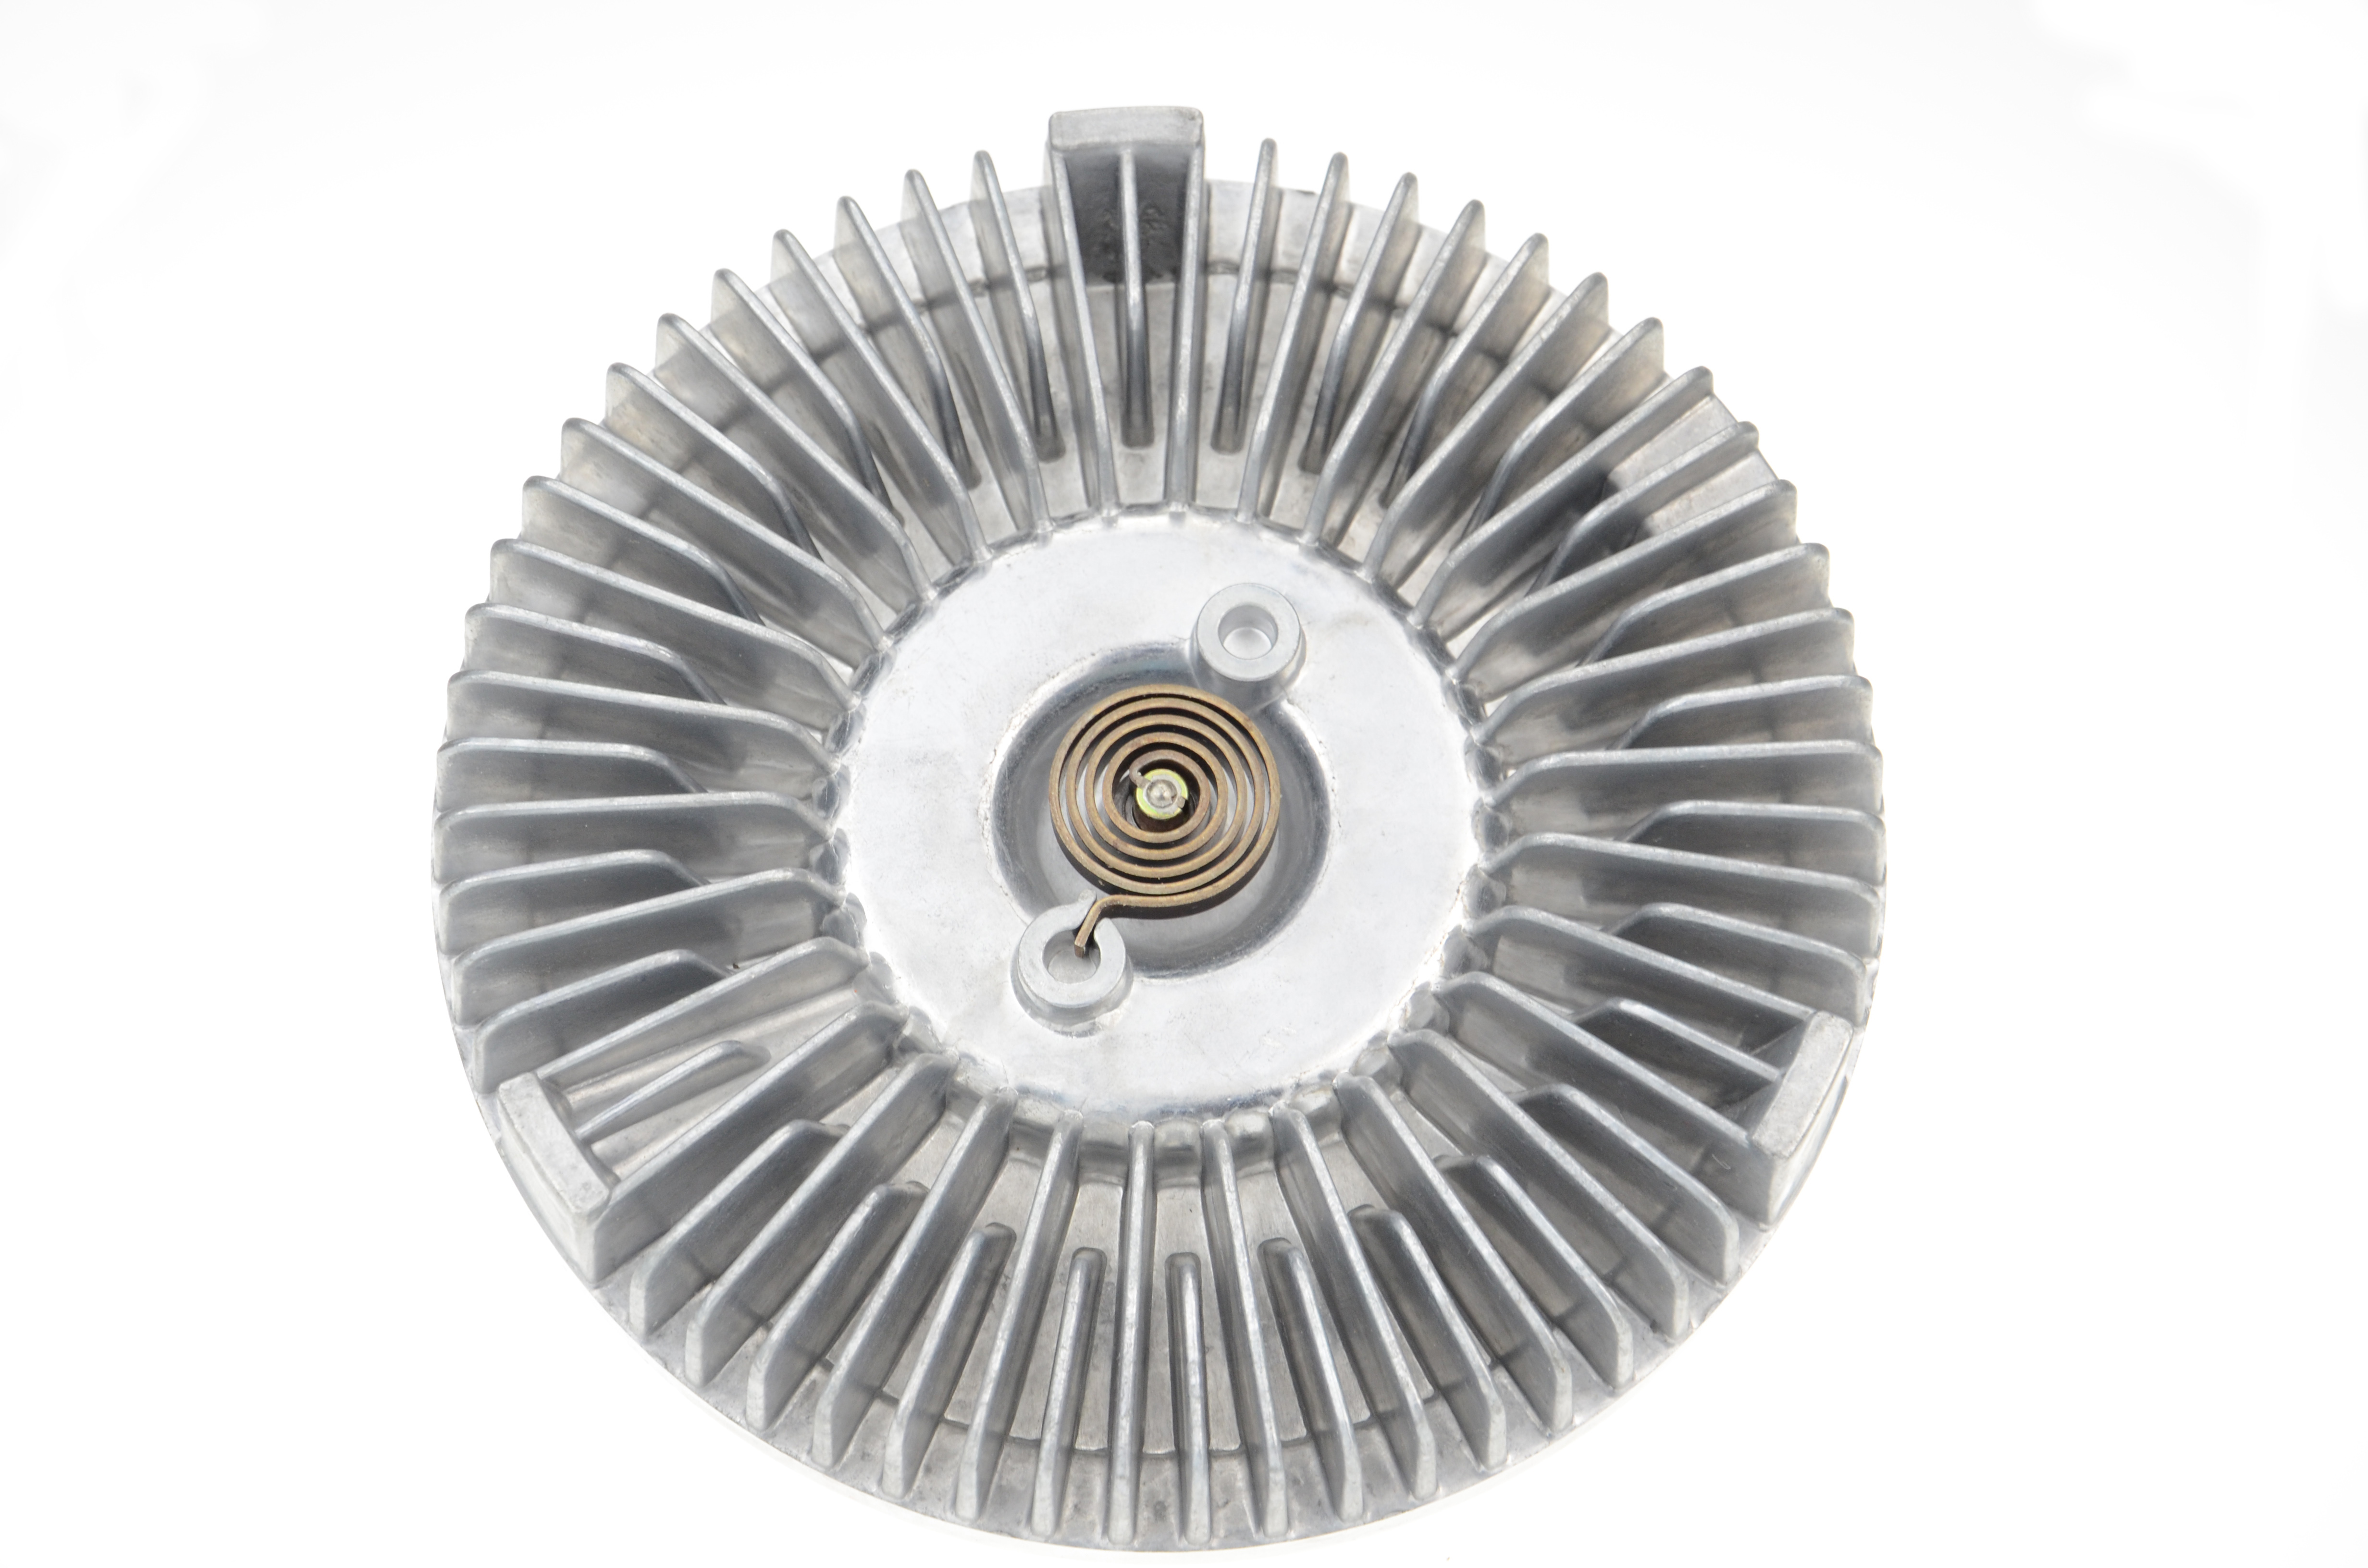 hight resolution of engine cooling fan clutch fit jeep grand cherokee zj 93 98 i6 4 0l ohv 52027823 one year quality warranty 30 days free return in fans kits from